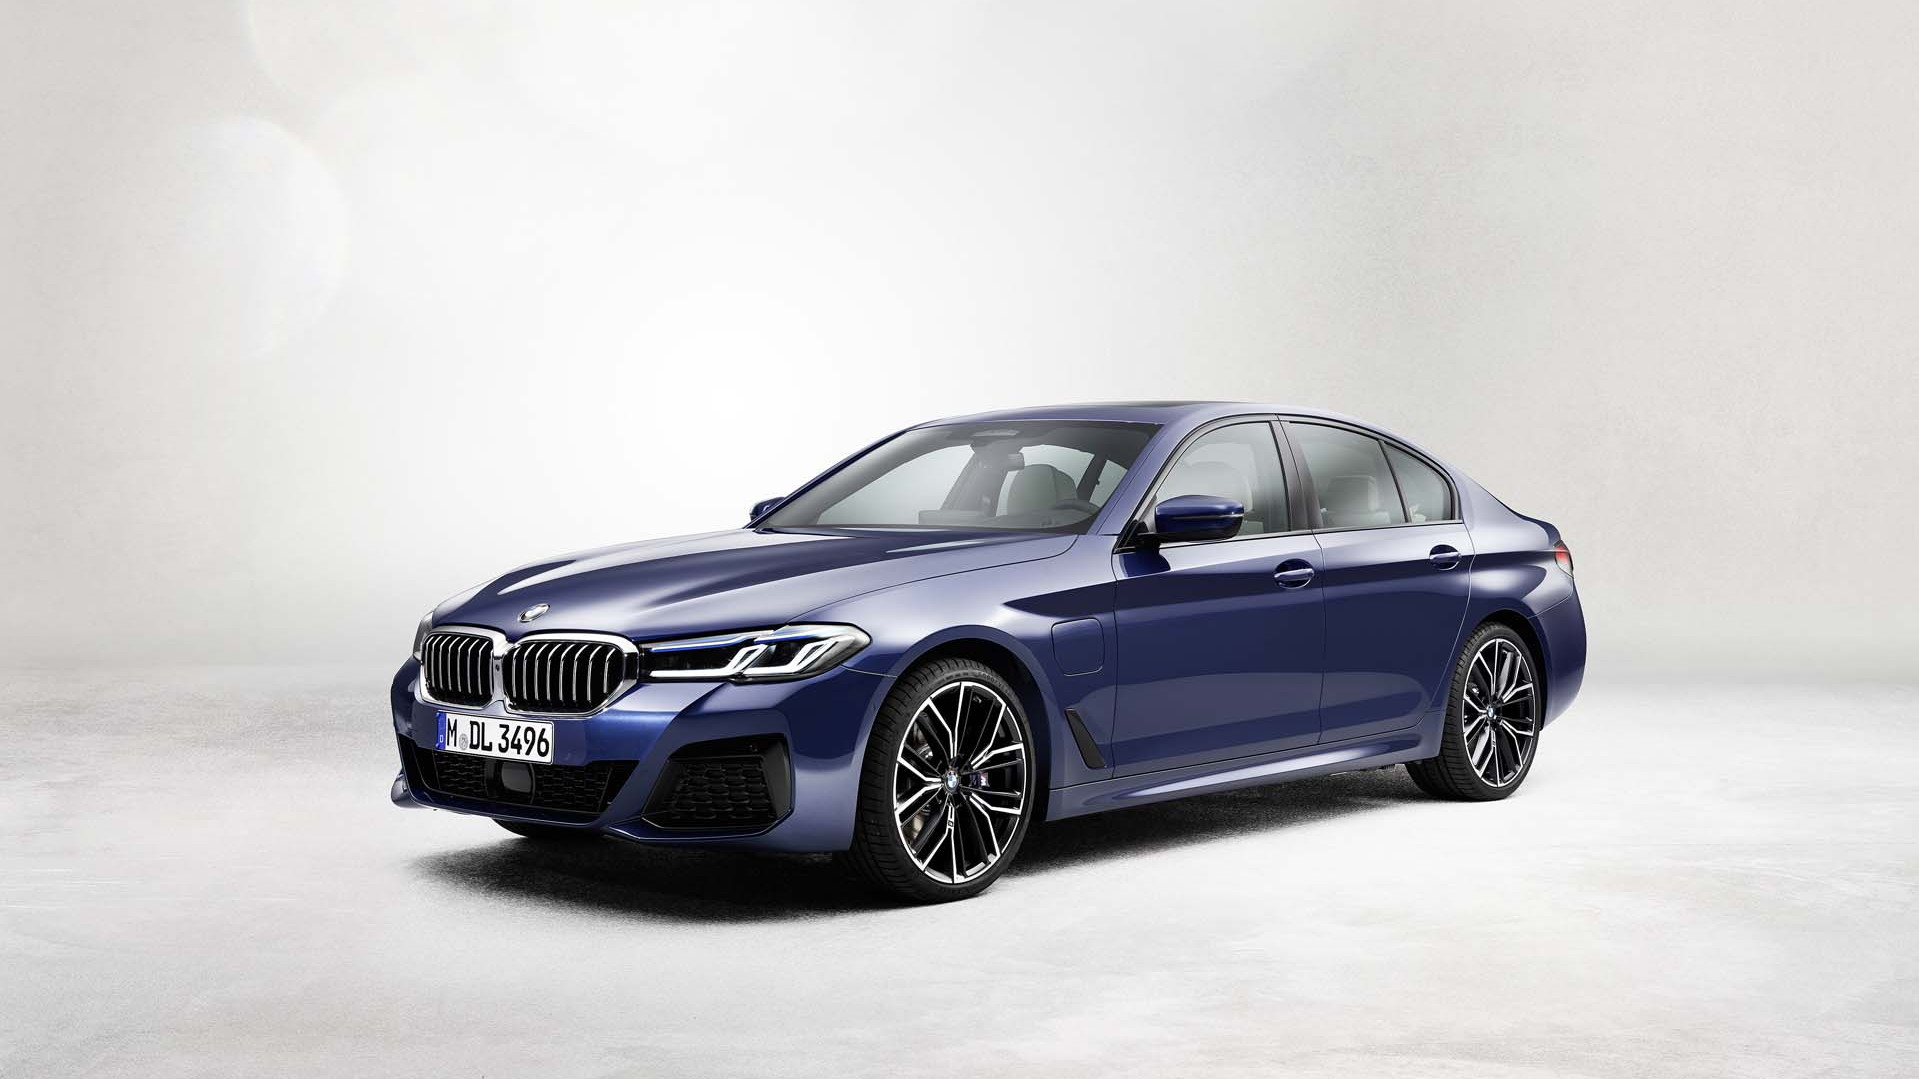 New BMW 5-series: Munich's answer to the E-class